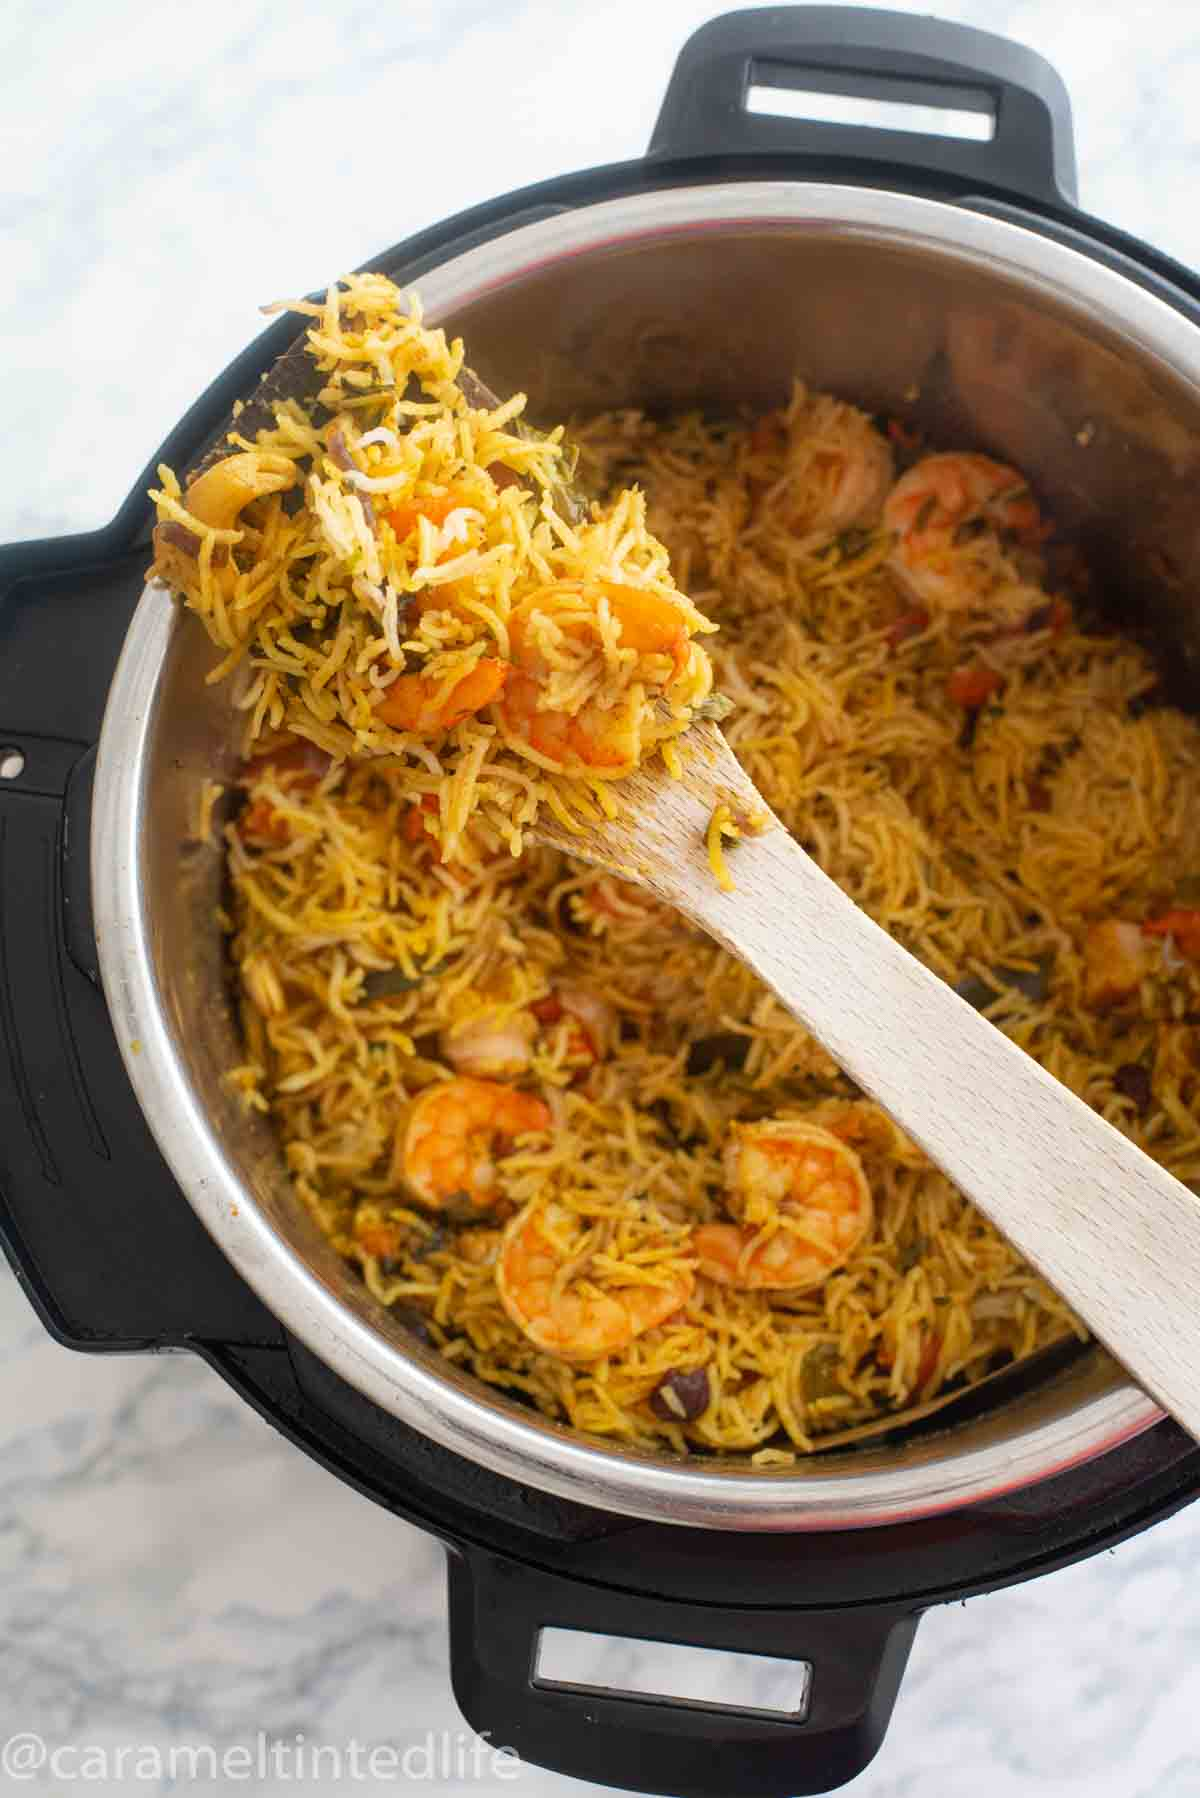 Shrimp biryani on a wooden ladle resting on an Instant Pot